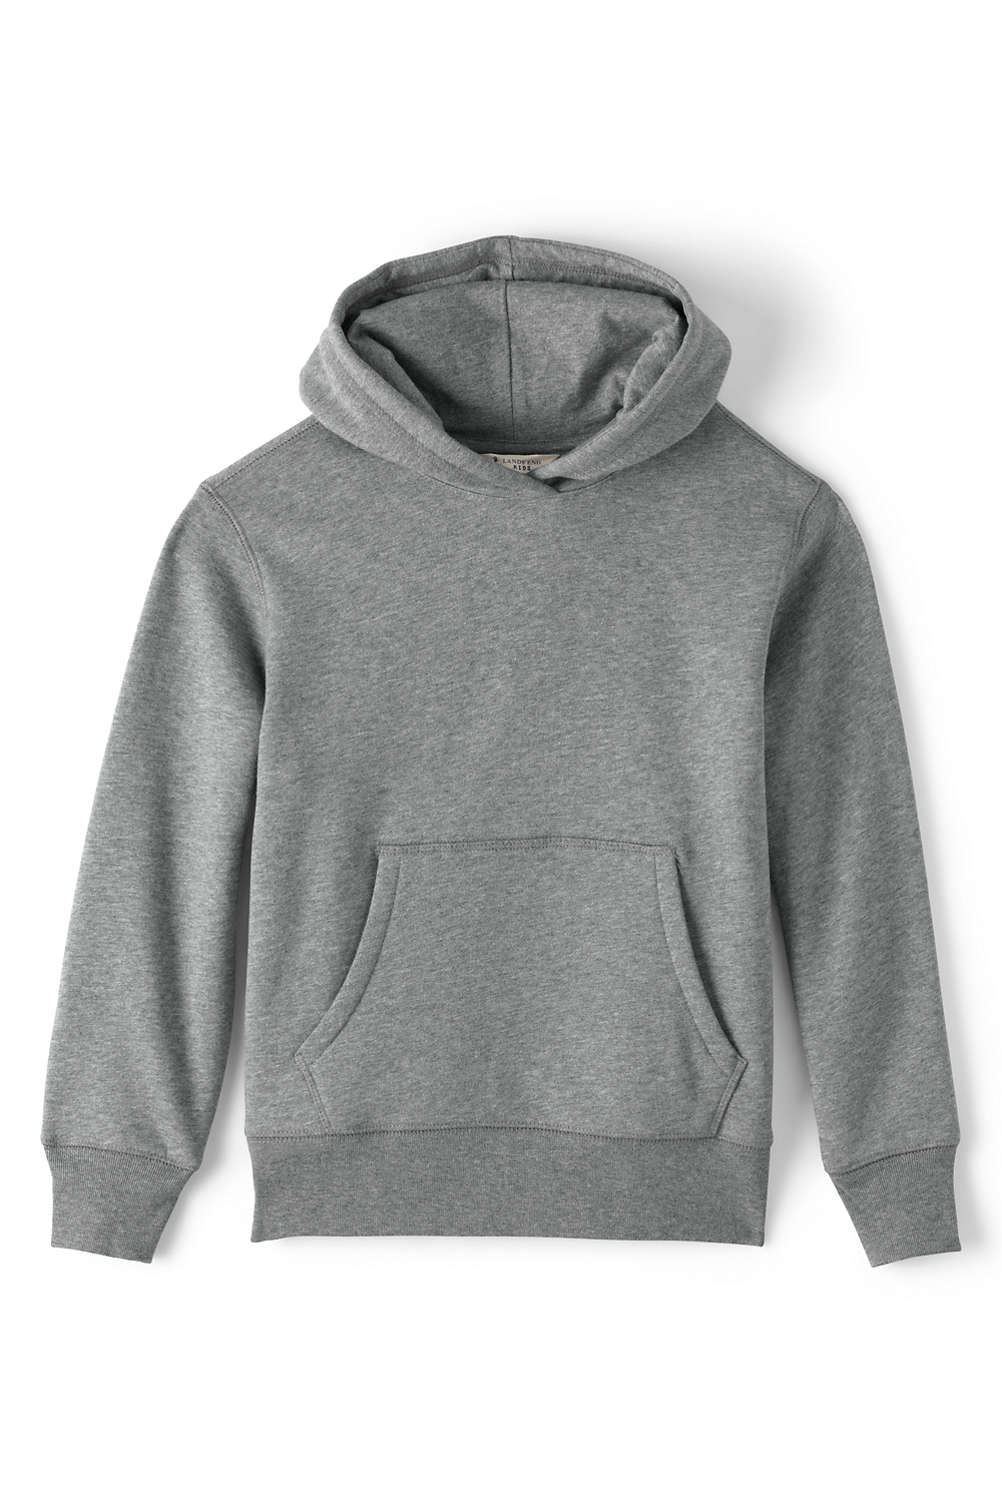 5fd1f7e9e School Uniform Hoodie Pullover Sweatshirt from Lands' End